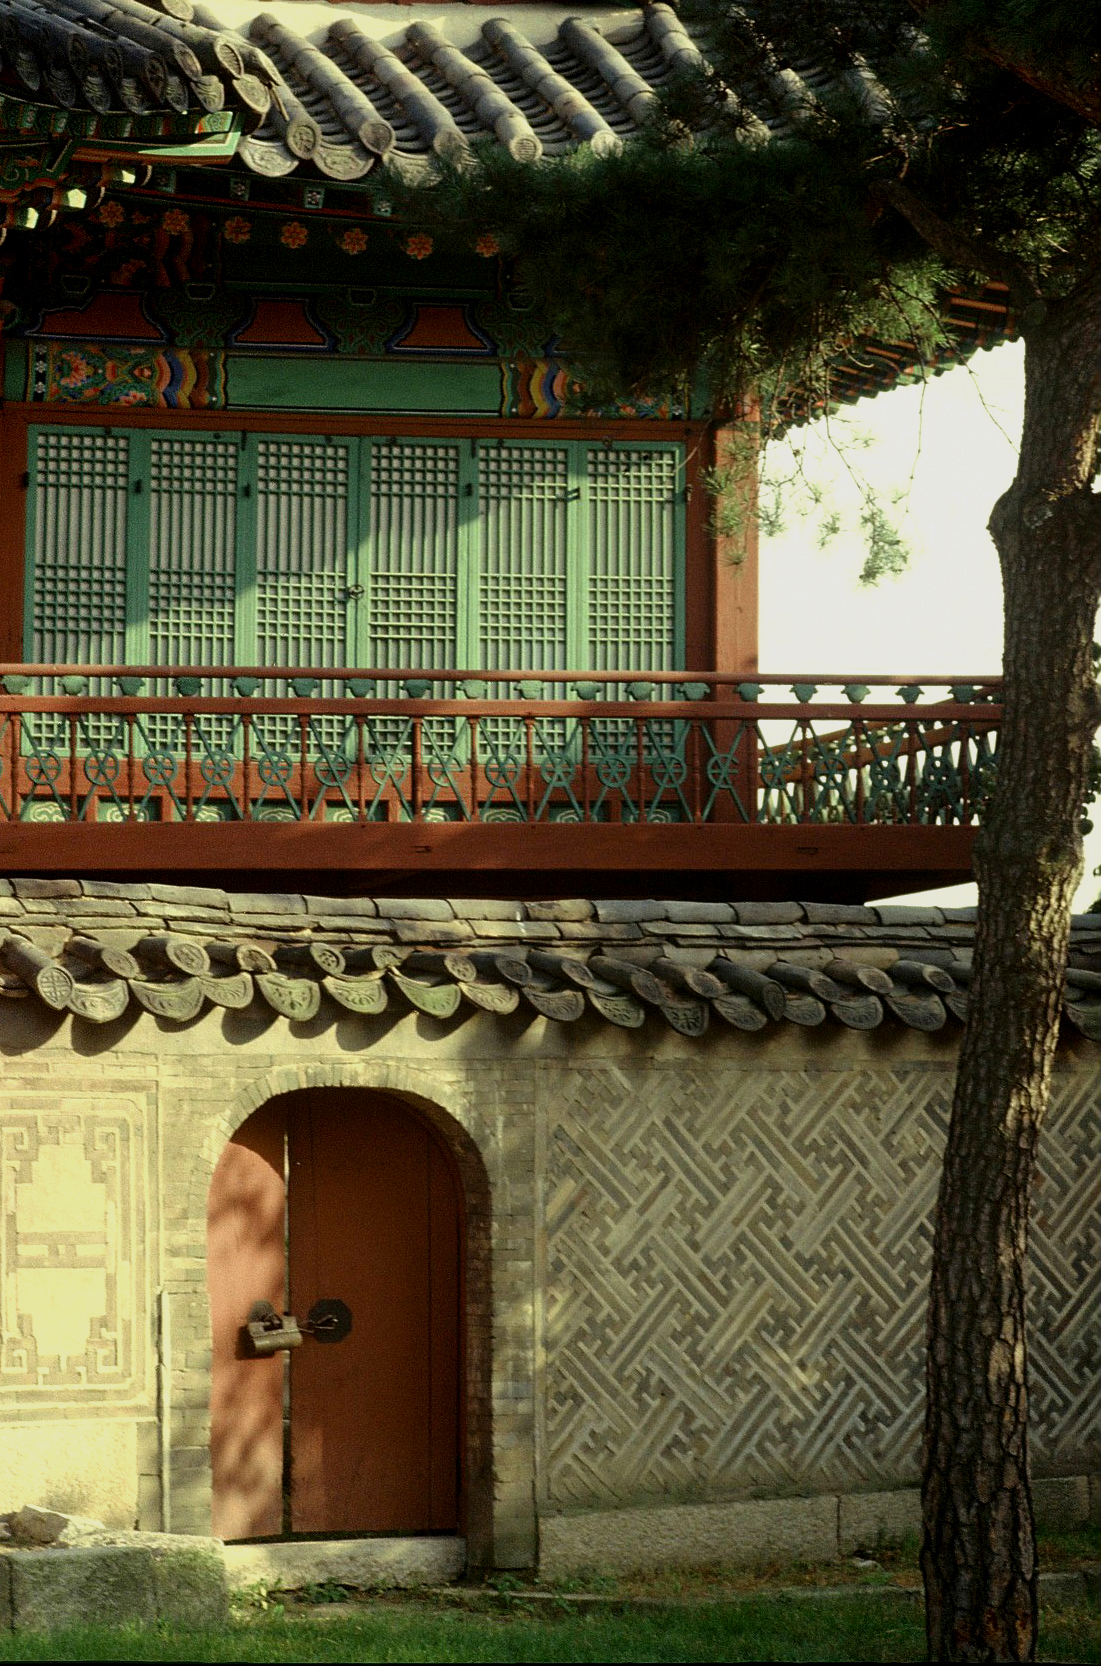 A doorway at the Changdok Palace in Seoul